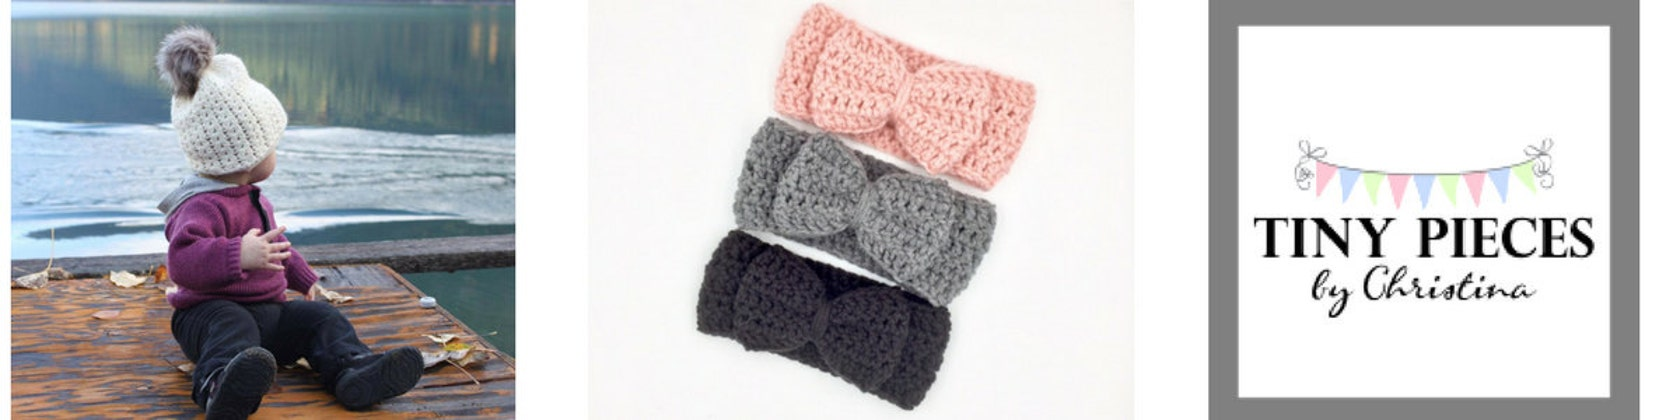 Crochet Baby Accessories by PiecesByChristina on Etsy